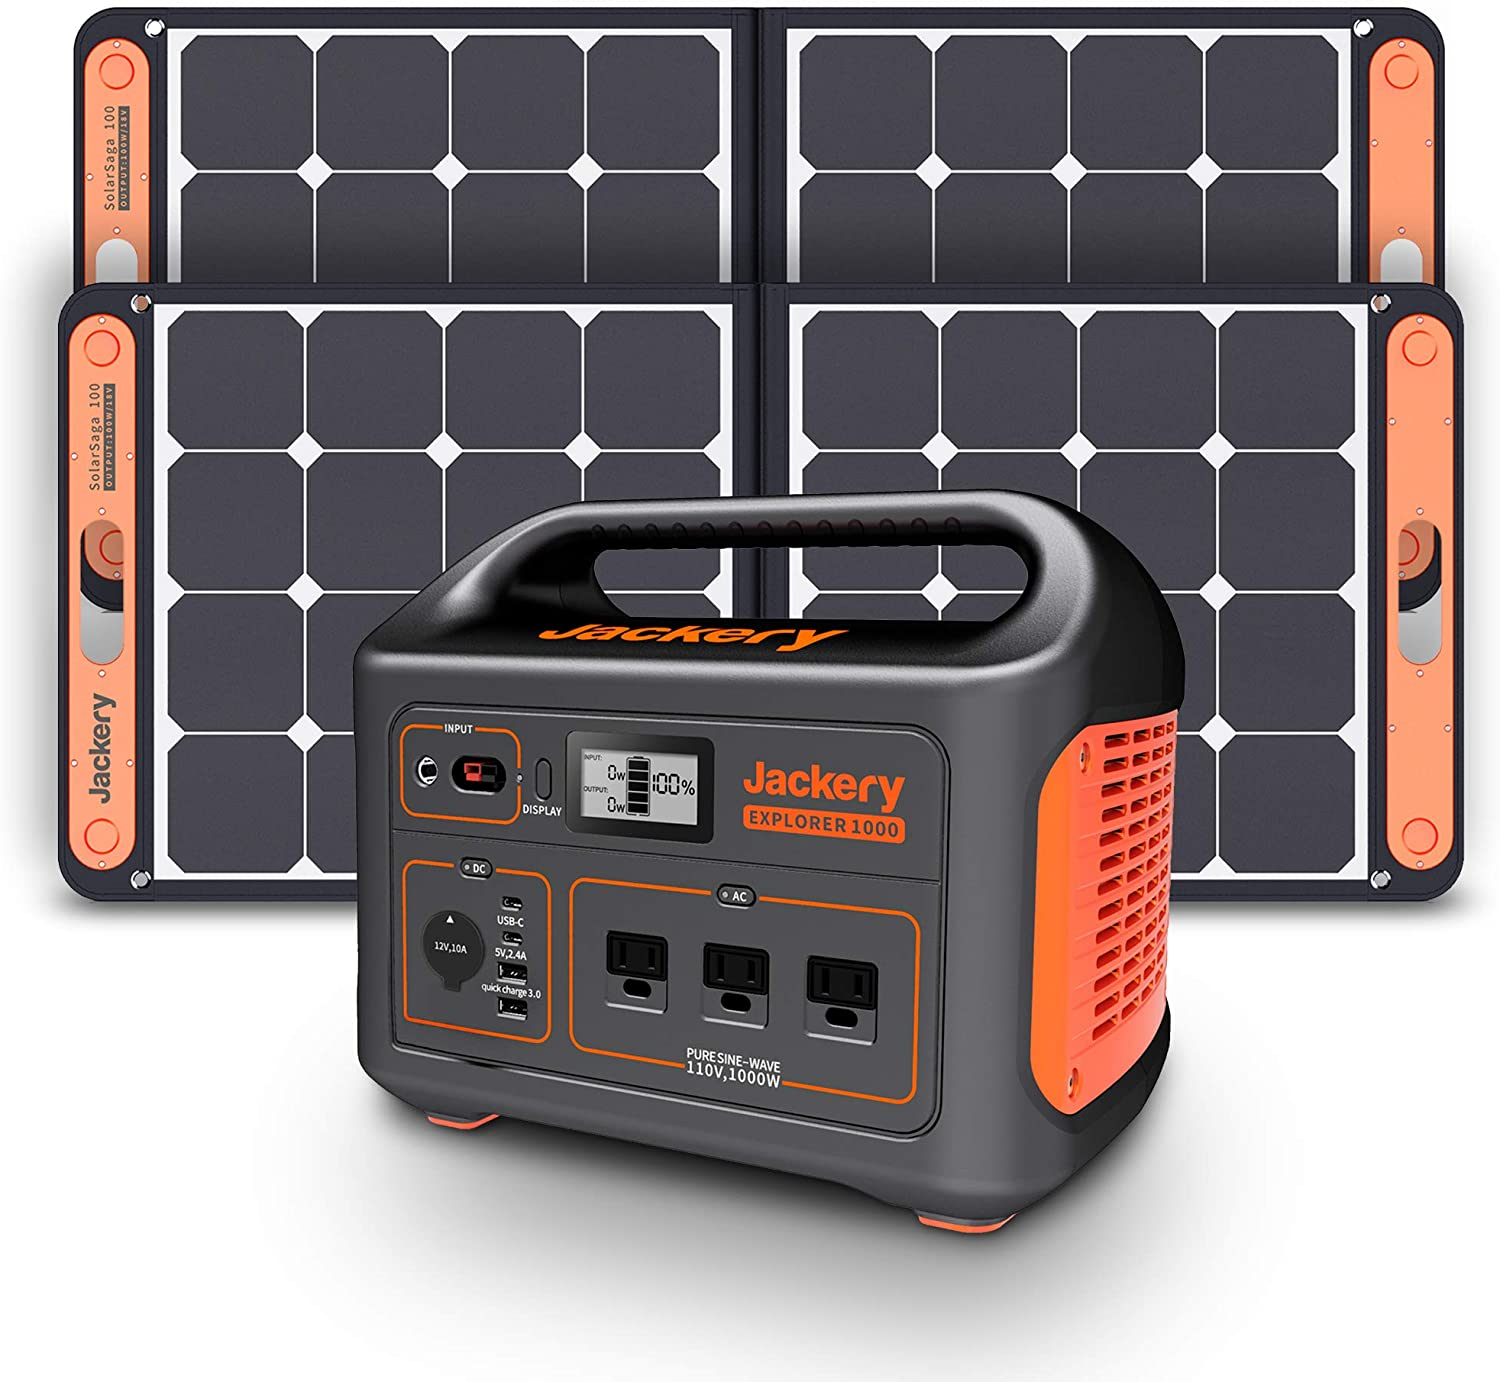 8 Cool Solar Powered Gadgets You Can Use At Home | We may be biased, but we think solar energy is pretty awesome. Beyond having solar panels on your home, there are also several cool solar-powered gadgets that you can use throughout your home.